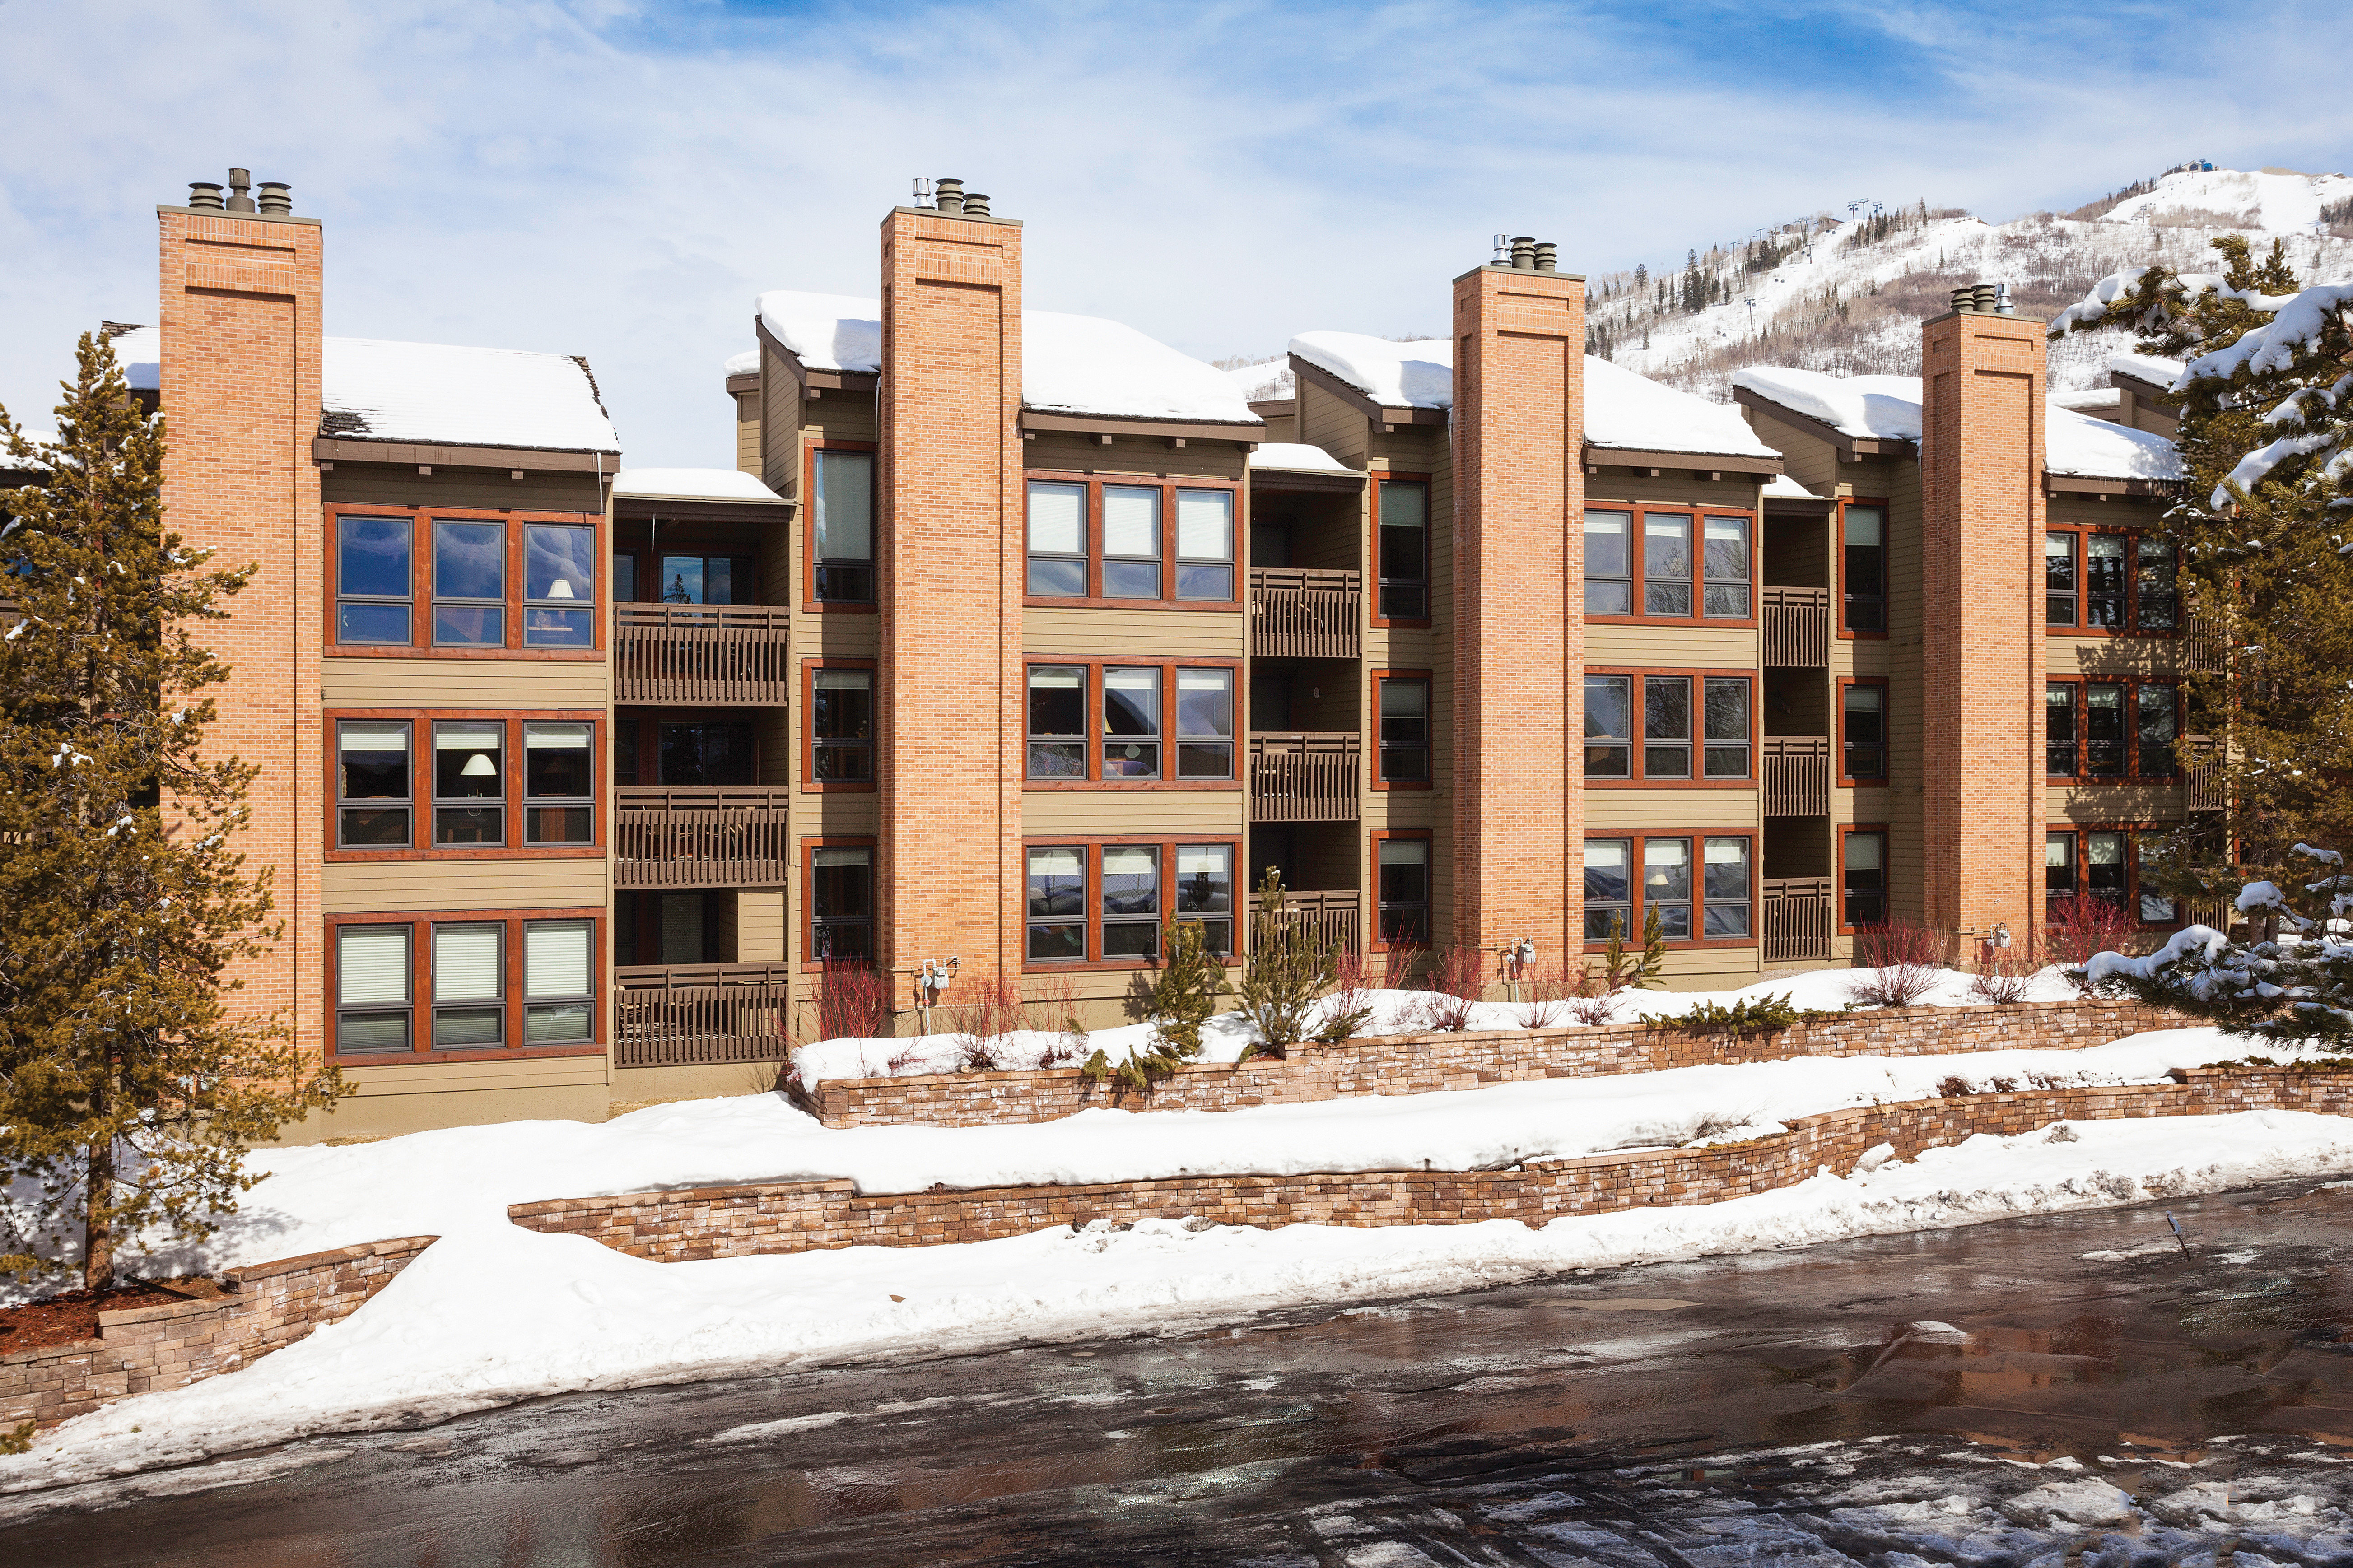 Grounds Lodge Outdoors Scenic views Ski snow sky building Winter neighbourhood weather residential area season home Downtown apartment building